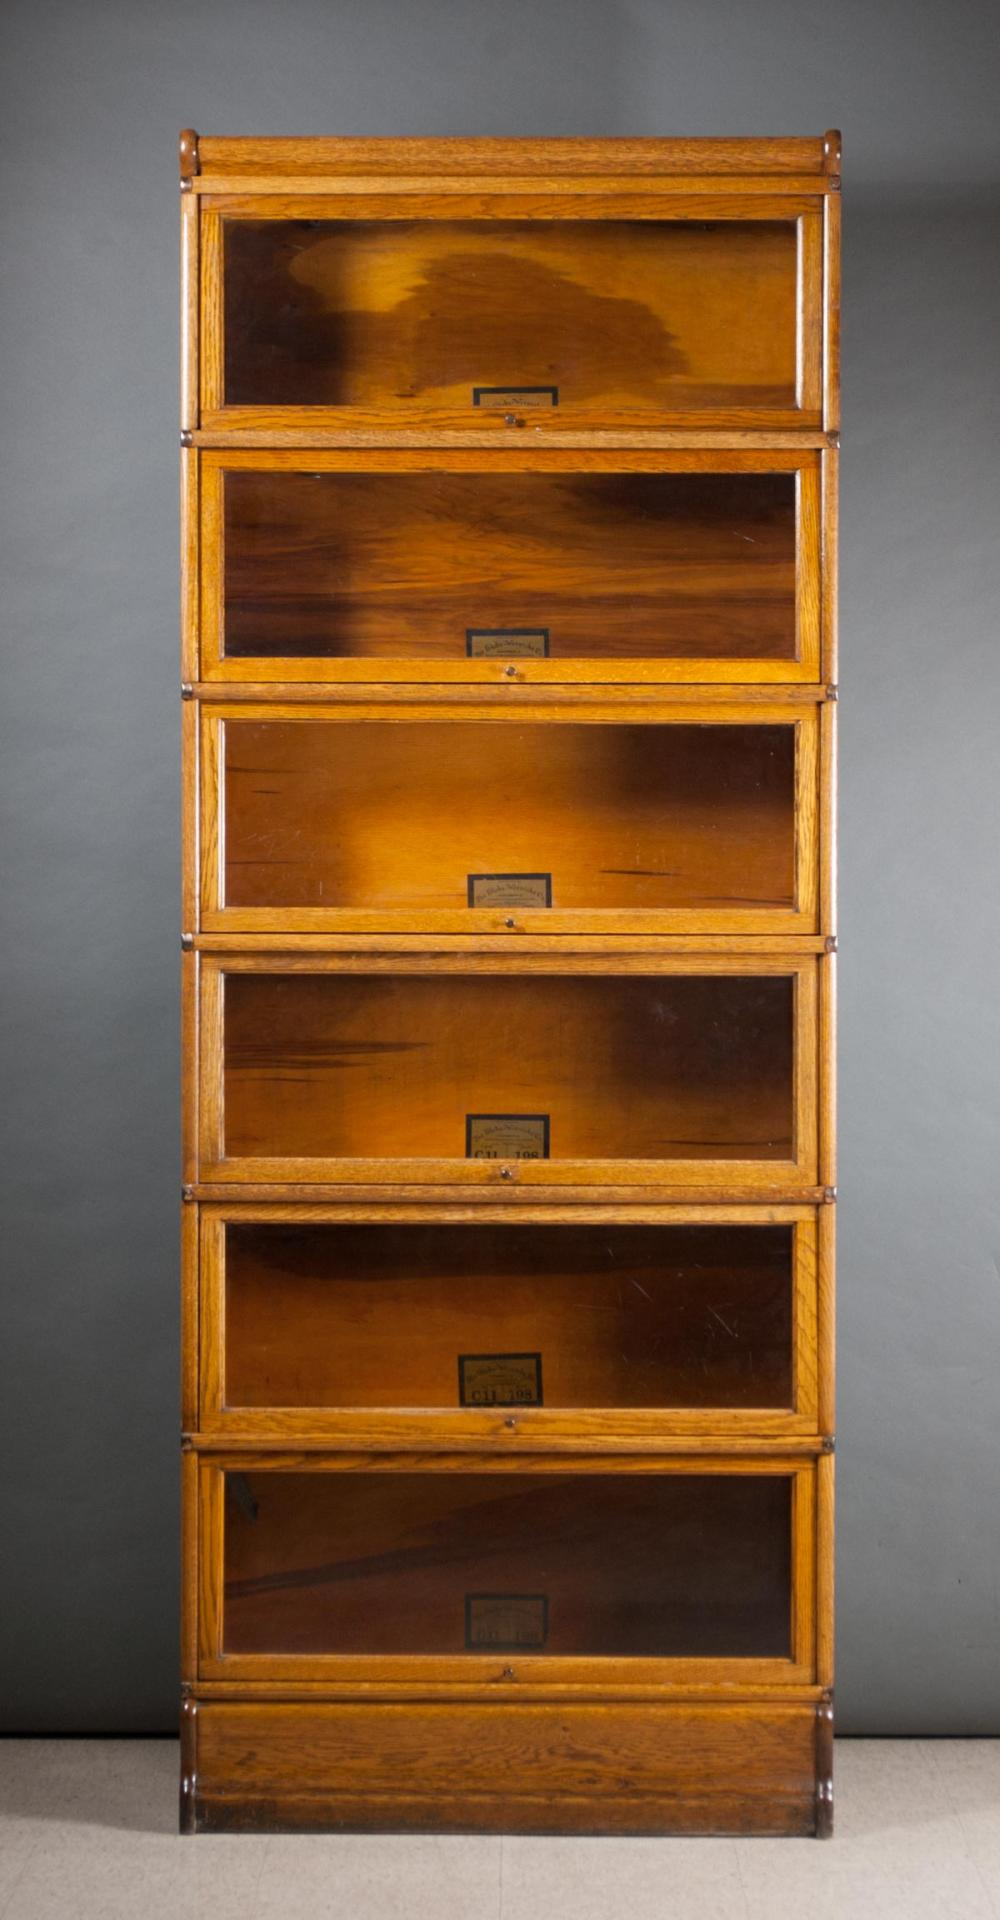 Lot 113: SIX-SECTION STACKING OAK LAWYER BOOKCASE, Globe-We